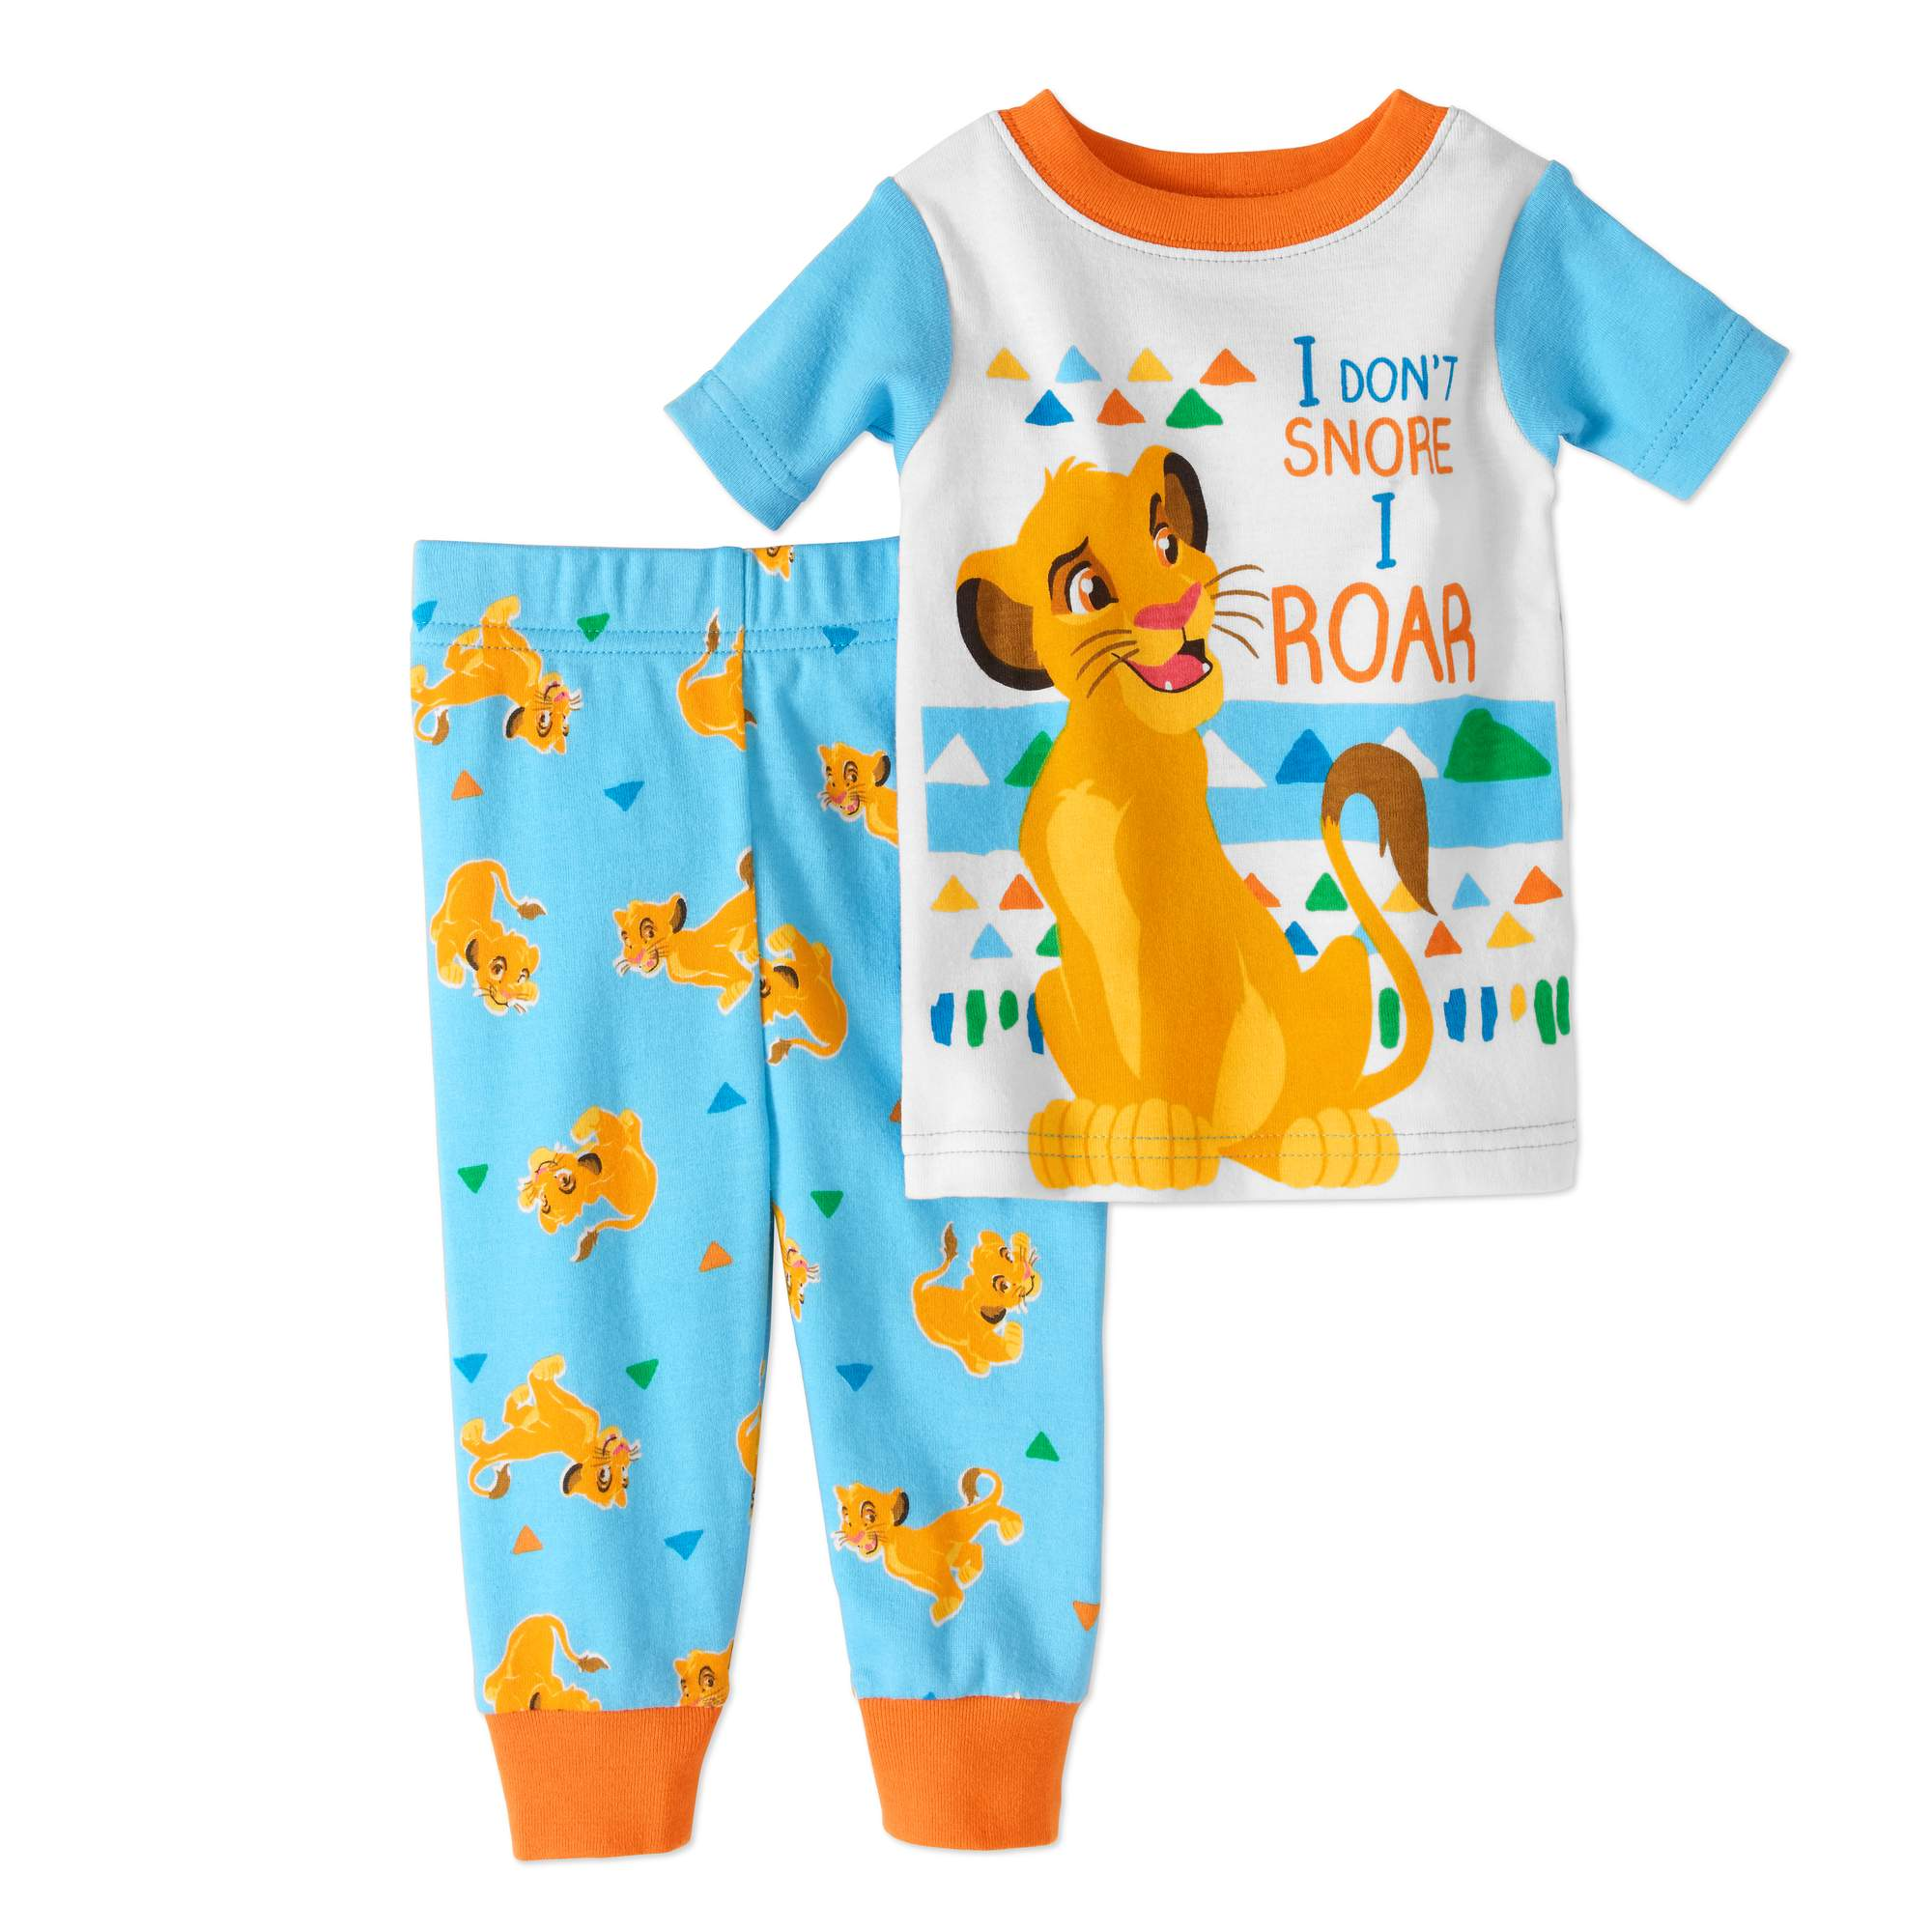 Newborn Baby Boy Cotton Tight Fit Pajamas, 2pc Set